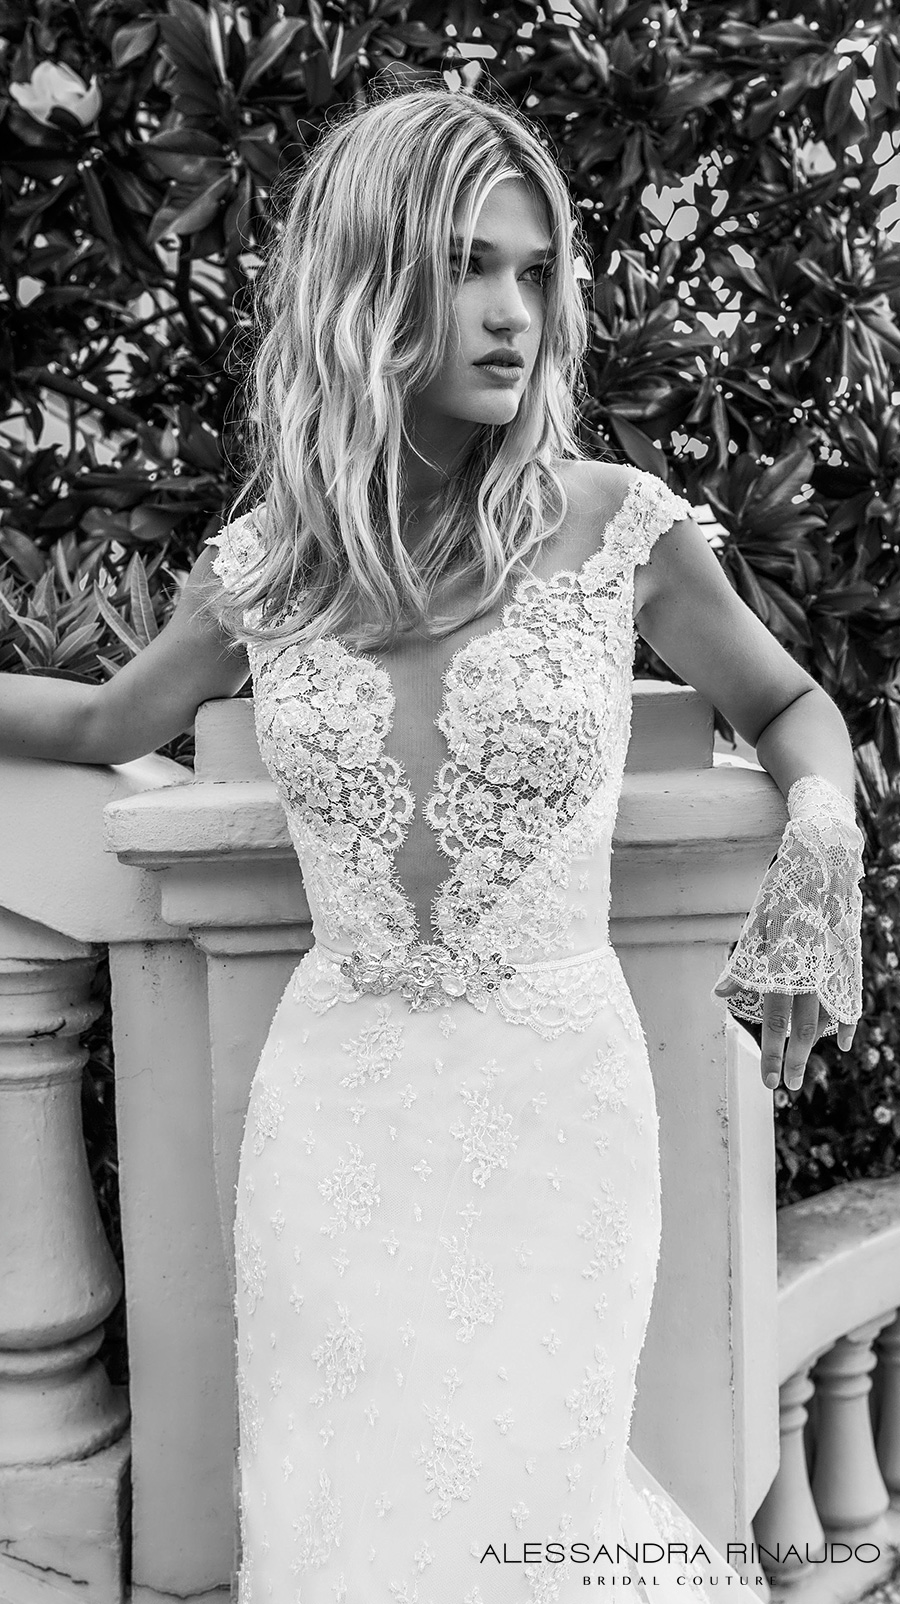 alessandra rinaudo 2017 bridal cap sleeves illusion boat deep plunging neckline full embellishment elegant sheath wedding dress illusion back royal long train (blondie) zv